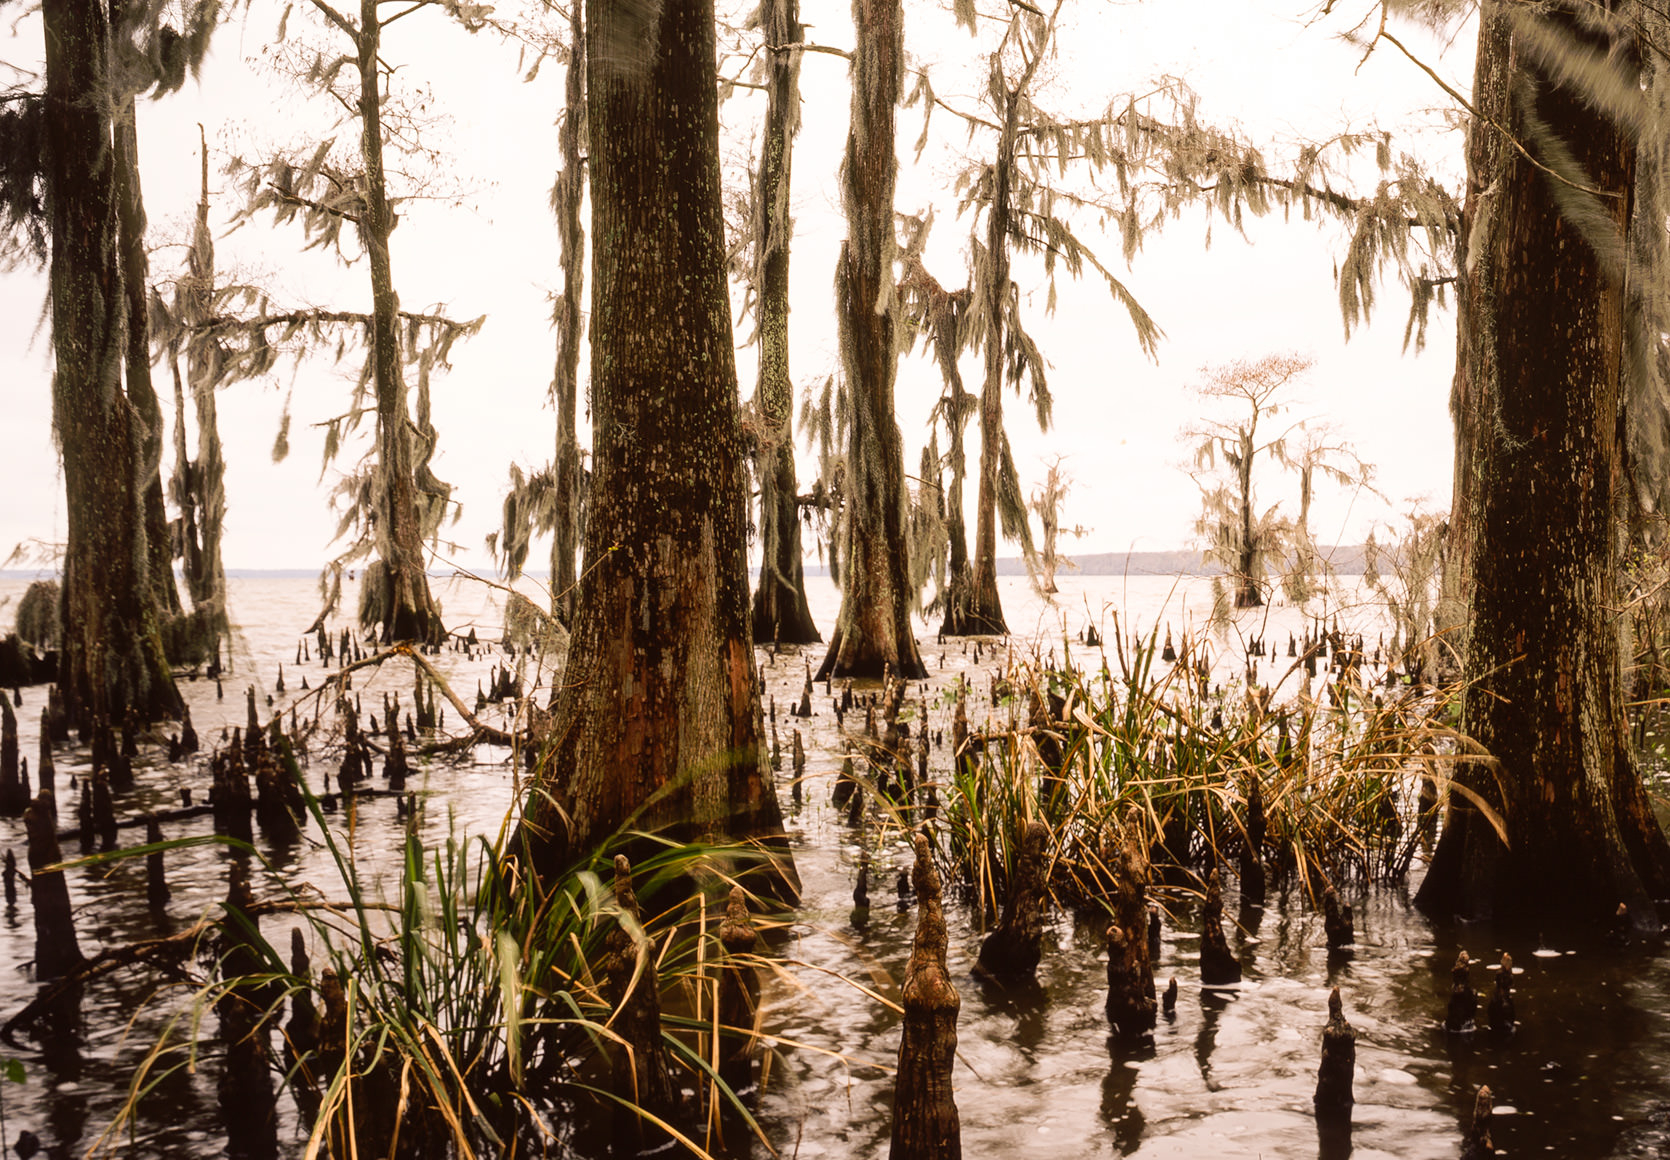 Photo of the Atchafalaya bayou in the morning.